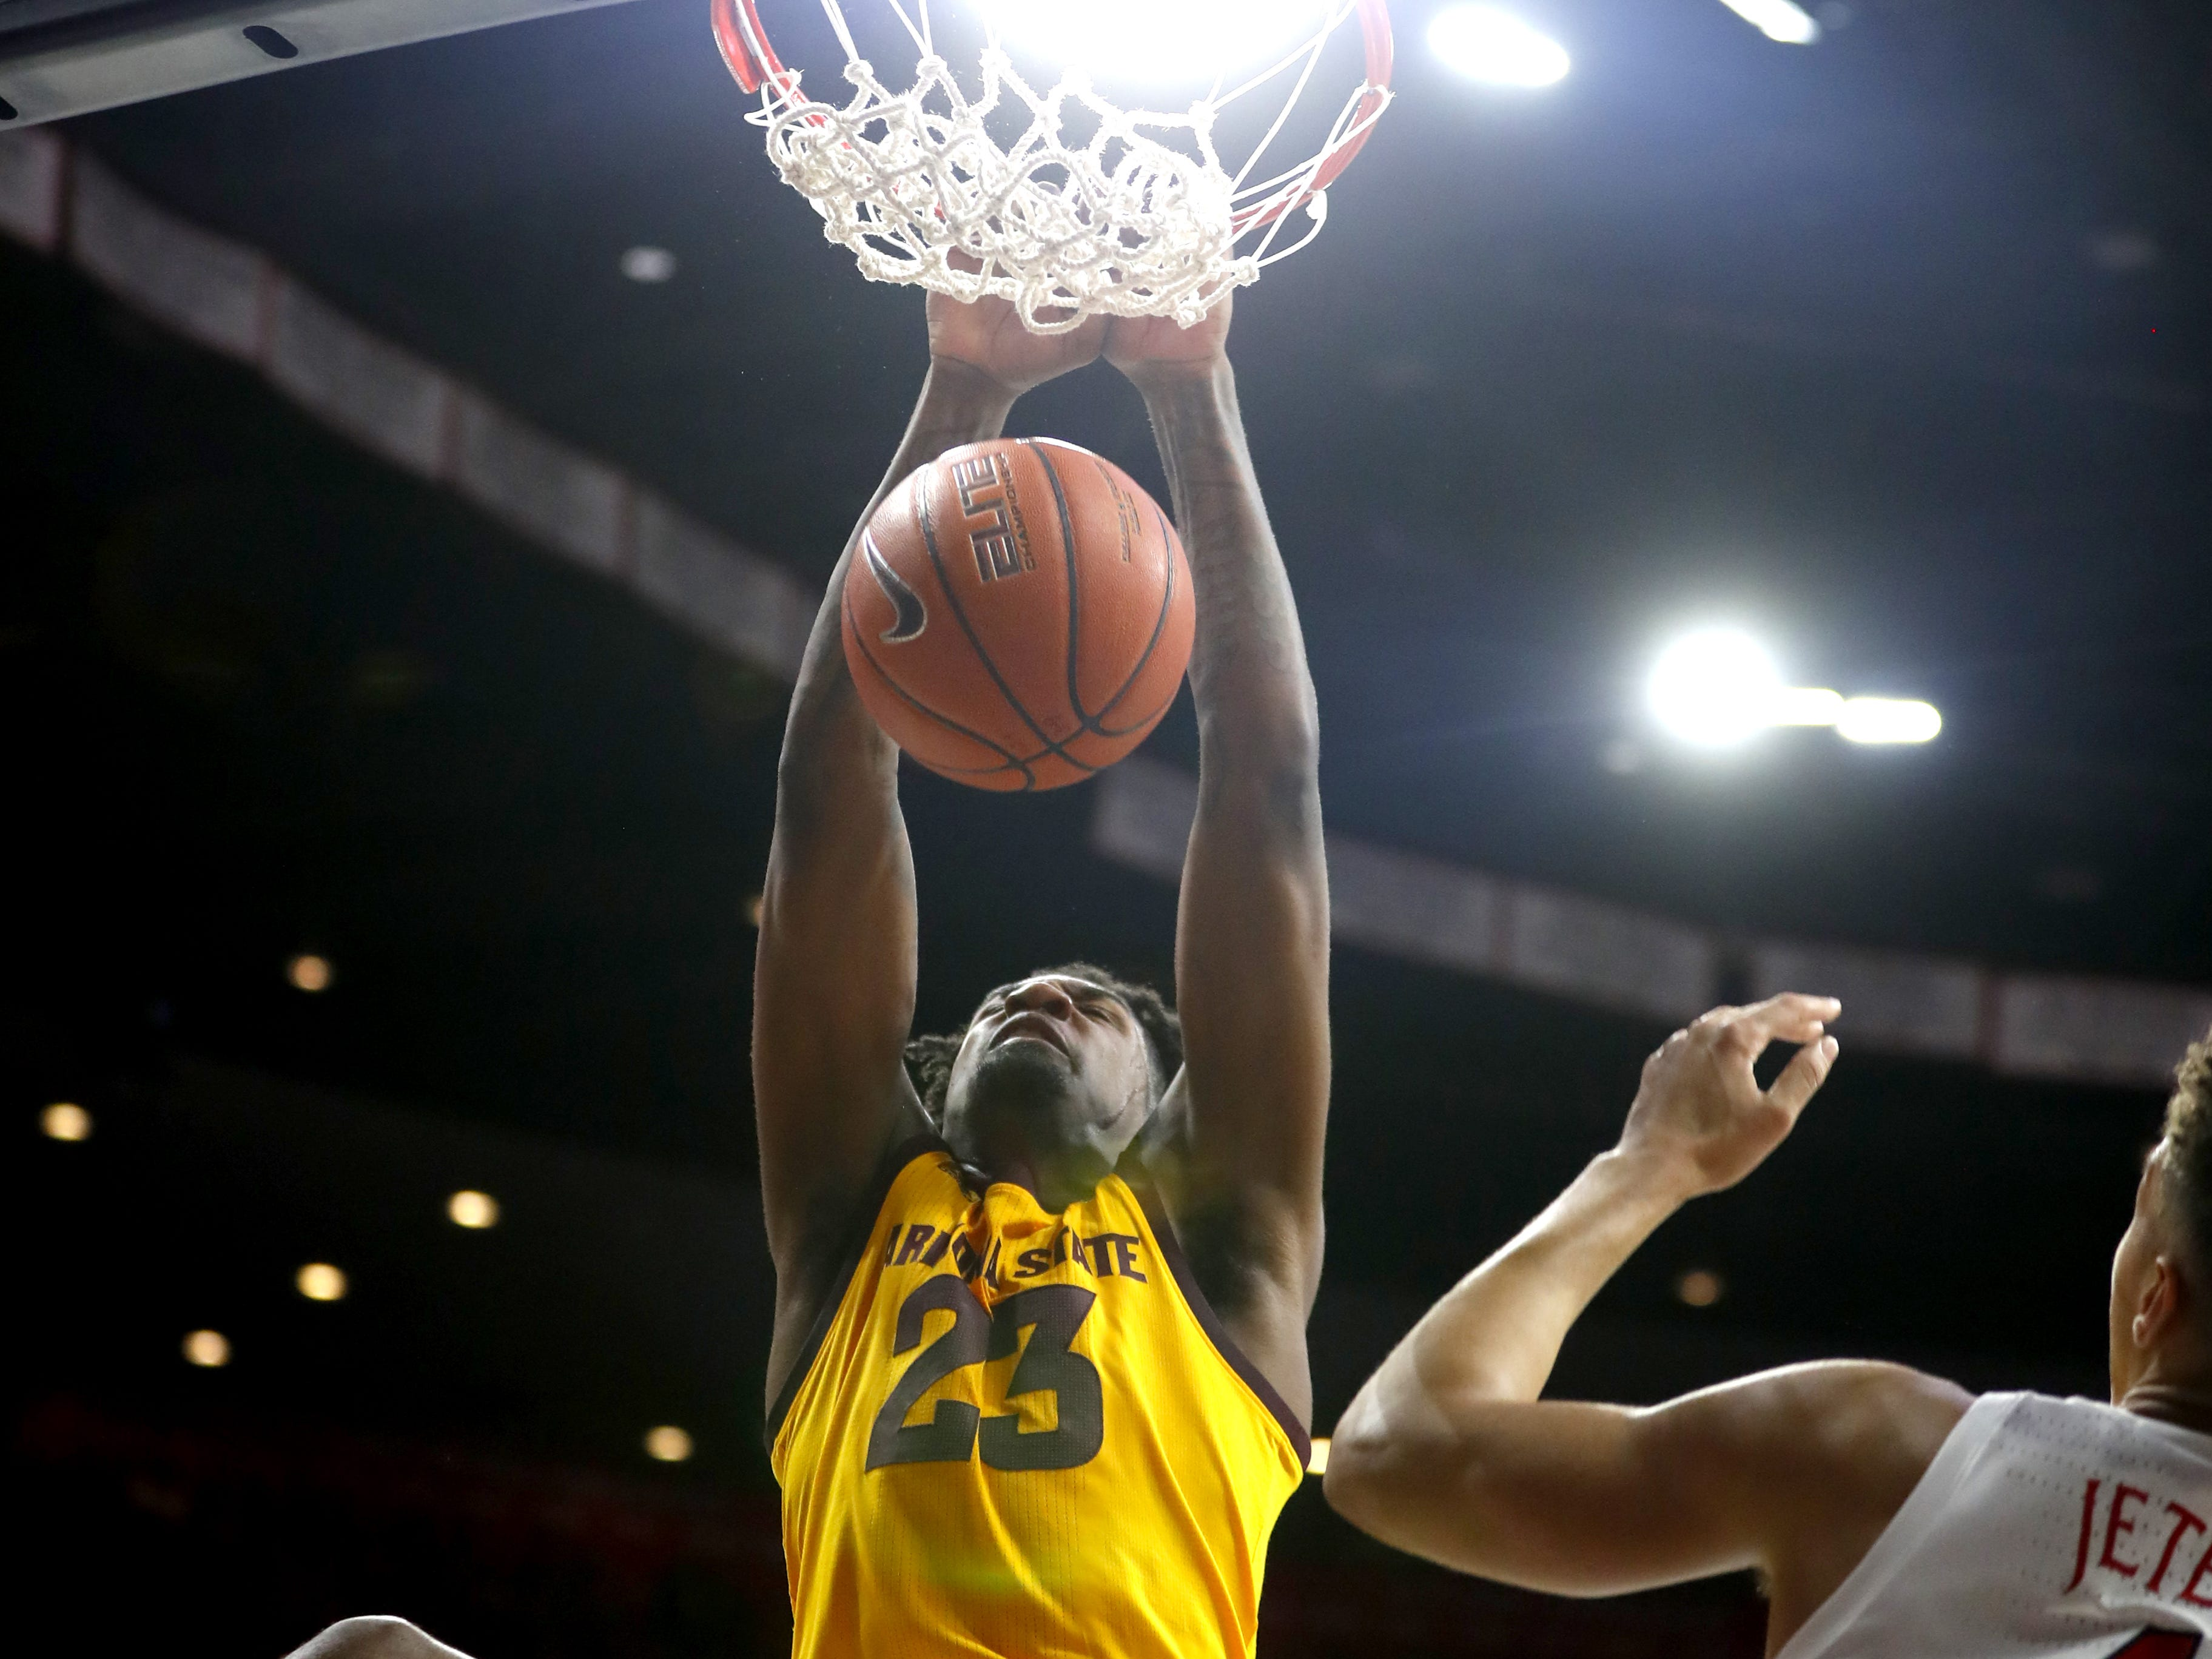 ASU's Romello White (23) dunks against Arizona's Chase Jeter (4) during the second half at the McKale Memorial Center in Tucson, Ariz. on March 9, 2019.